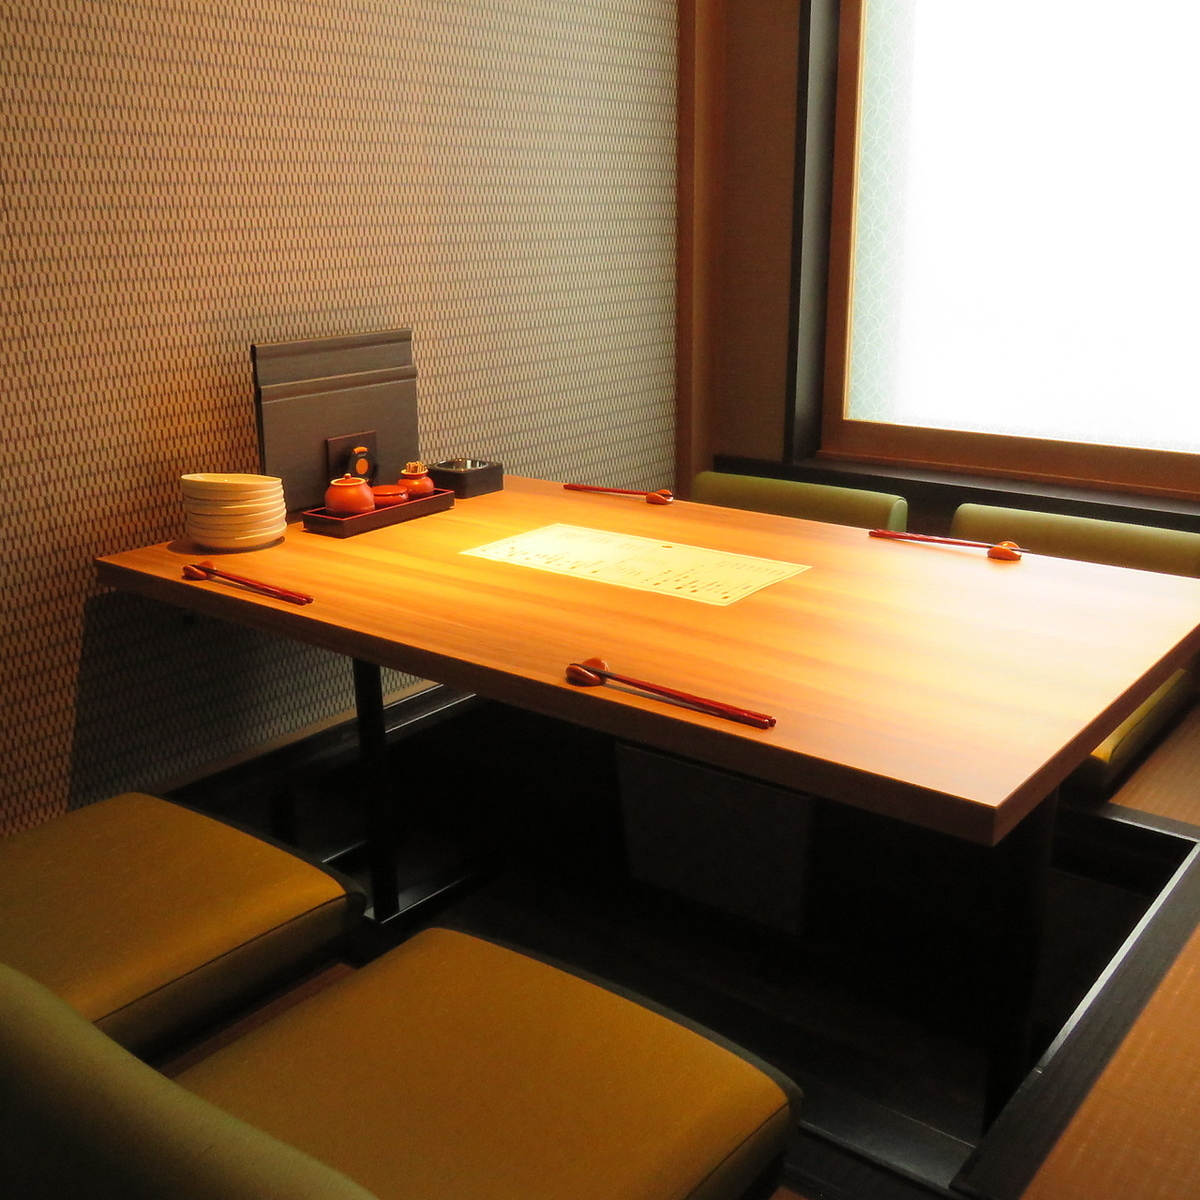 The four-person private room is a space easy to use for sudden meals and drinking party!